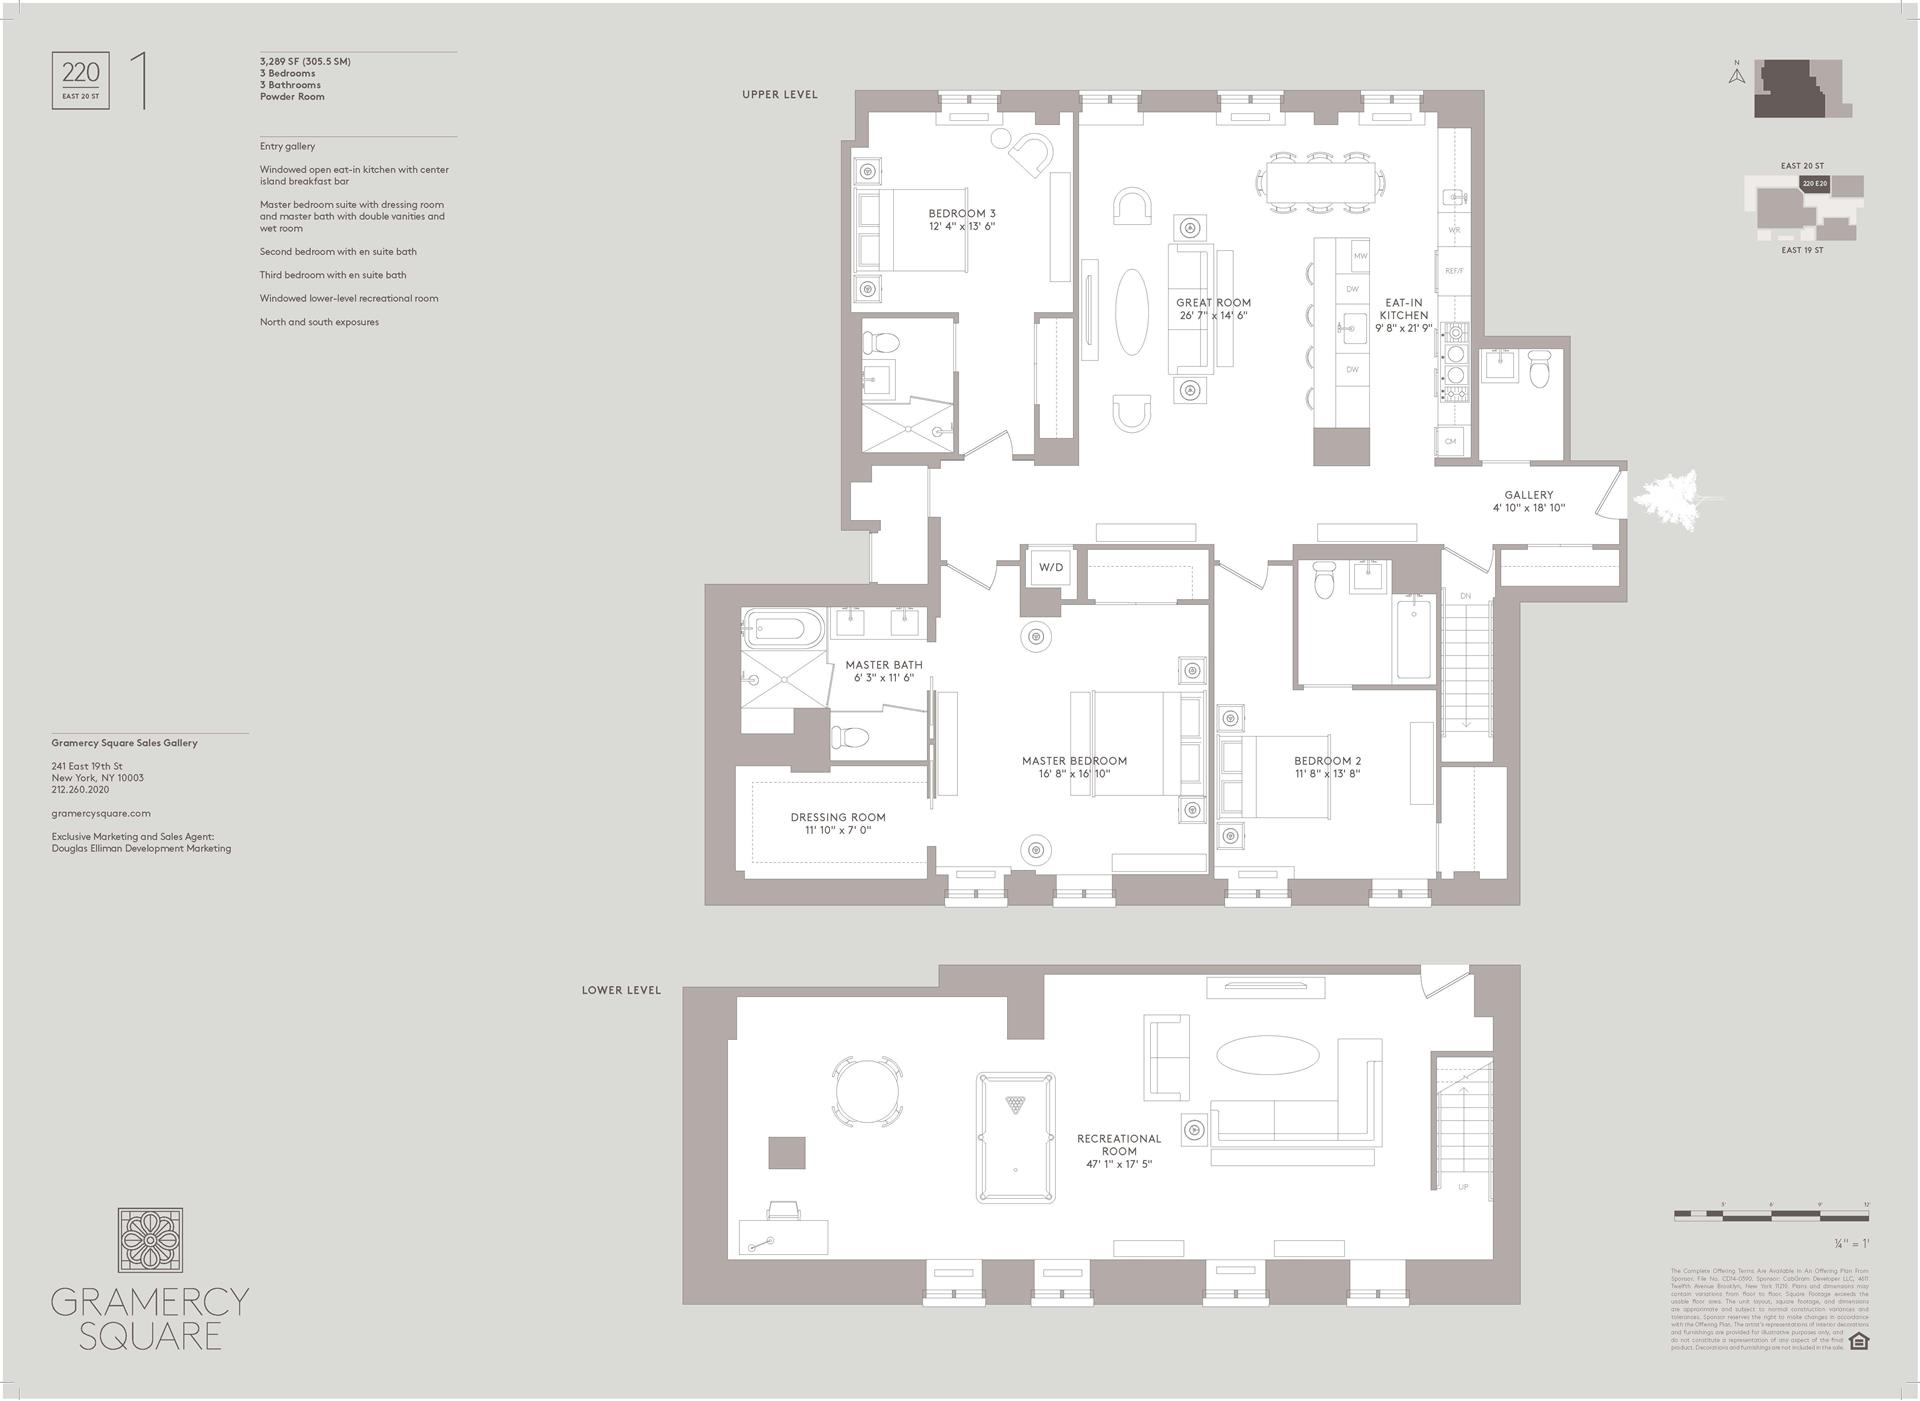 Floor plan of Gramercy Square, 220 East 20th St, MAIS1 - Gramercy - Union Square, New York